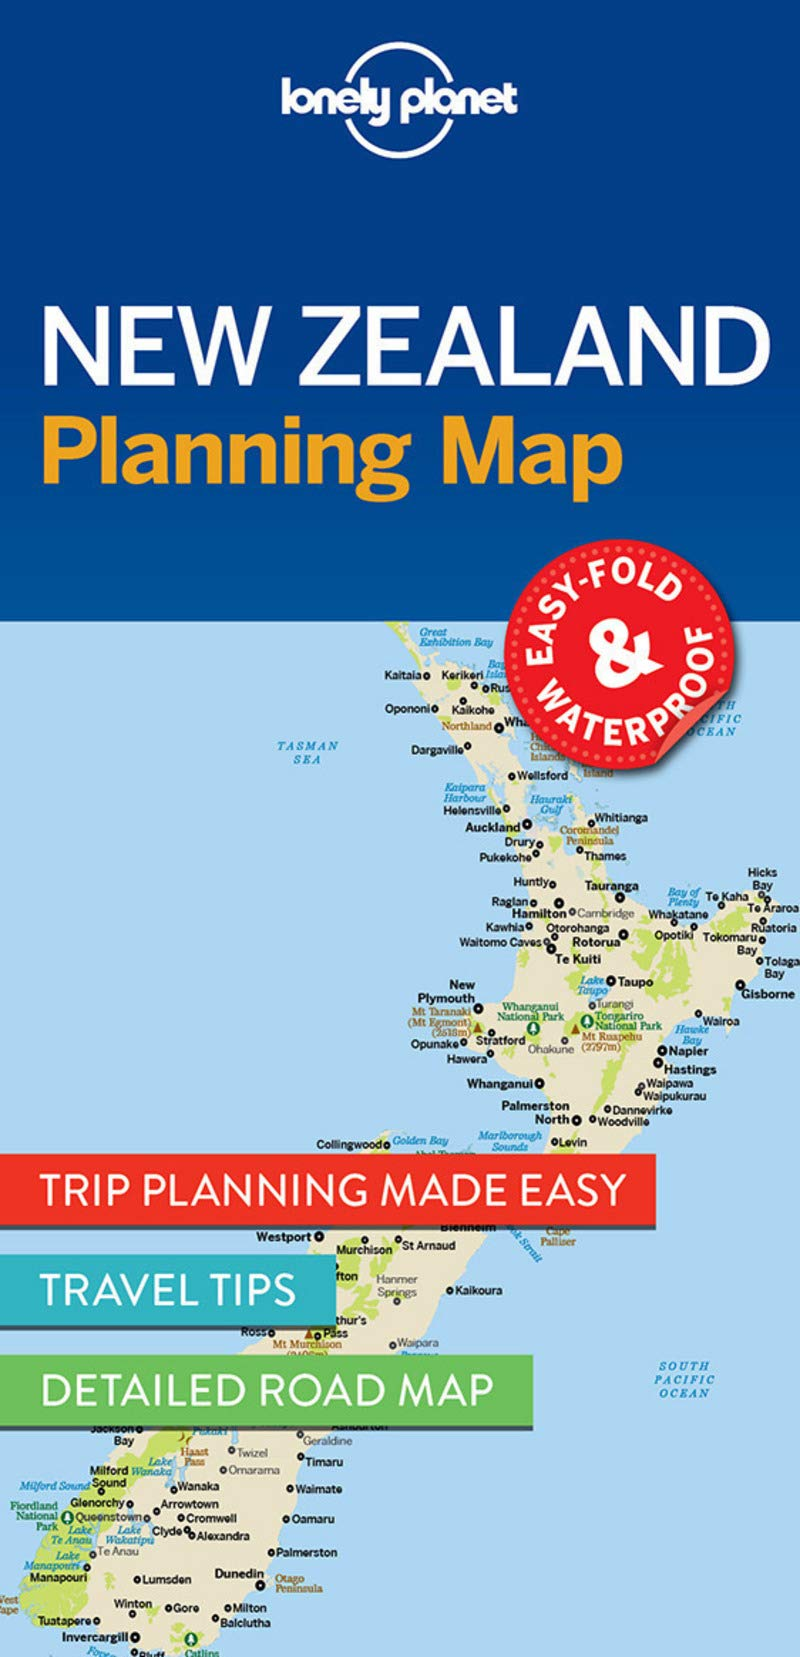 Lonely Planet New Zealand Planning Map 9781786579041